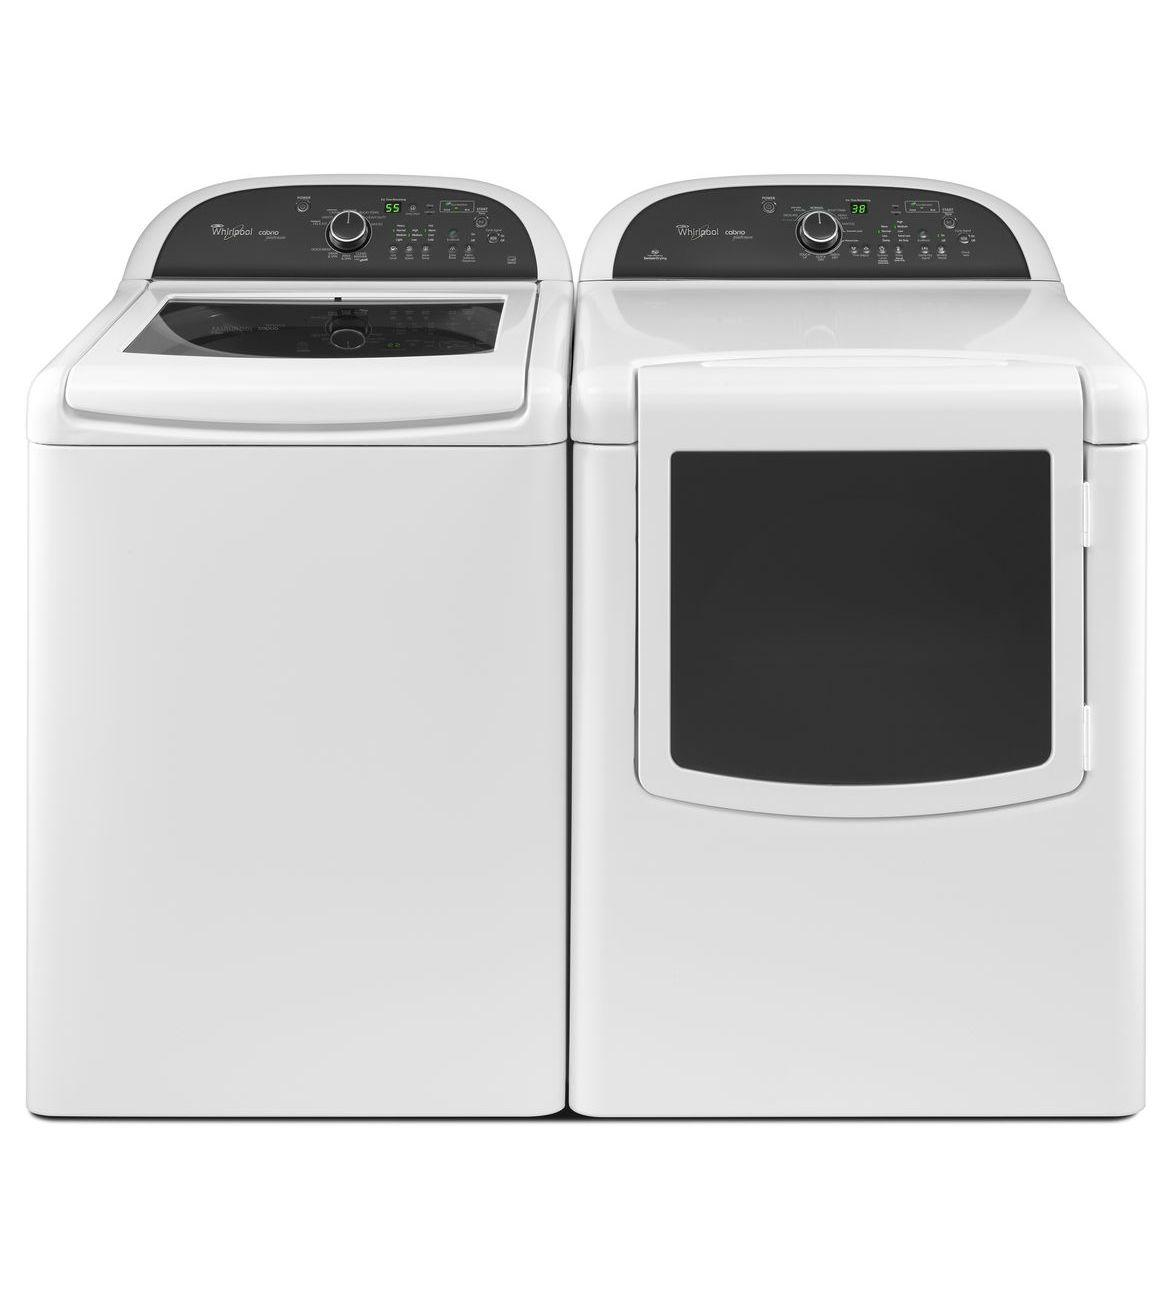 Whirlpool Wtw8100bw 28 Quot Top Load Washer With 4 5 Cu Ft